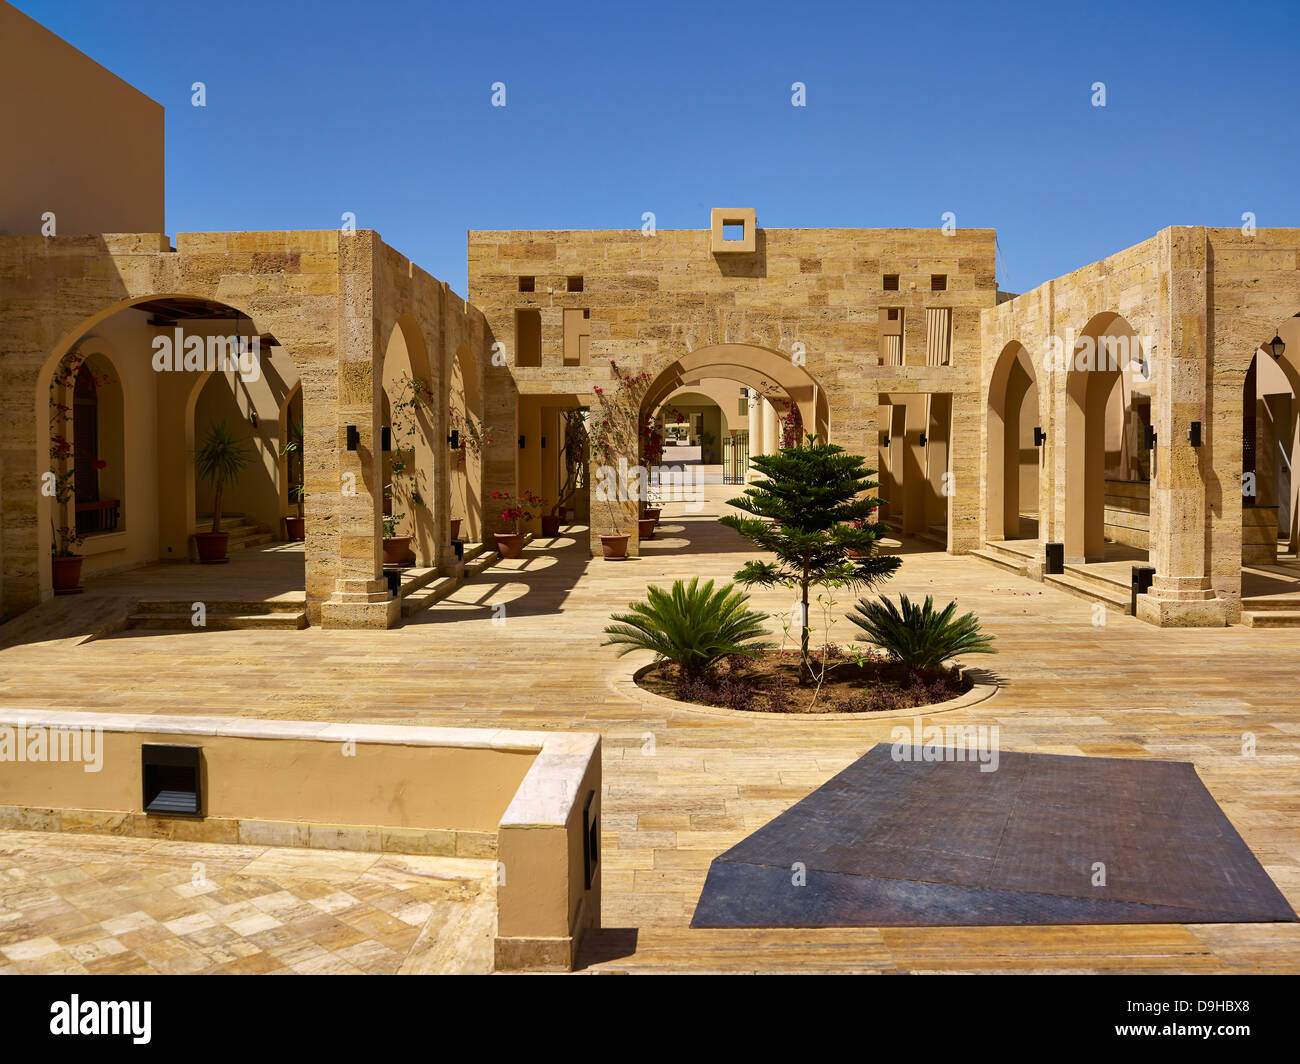 Yacht Club at Tala Bay in Aqaba, Jordan, Middle East - Stock Image